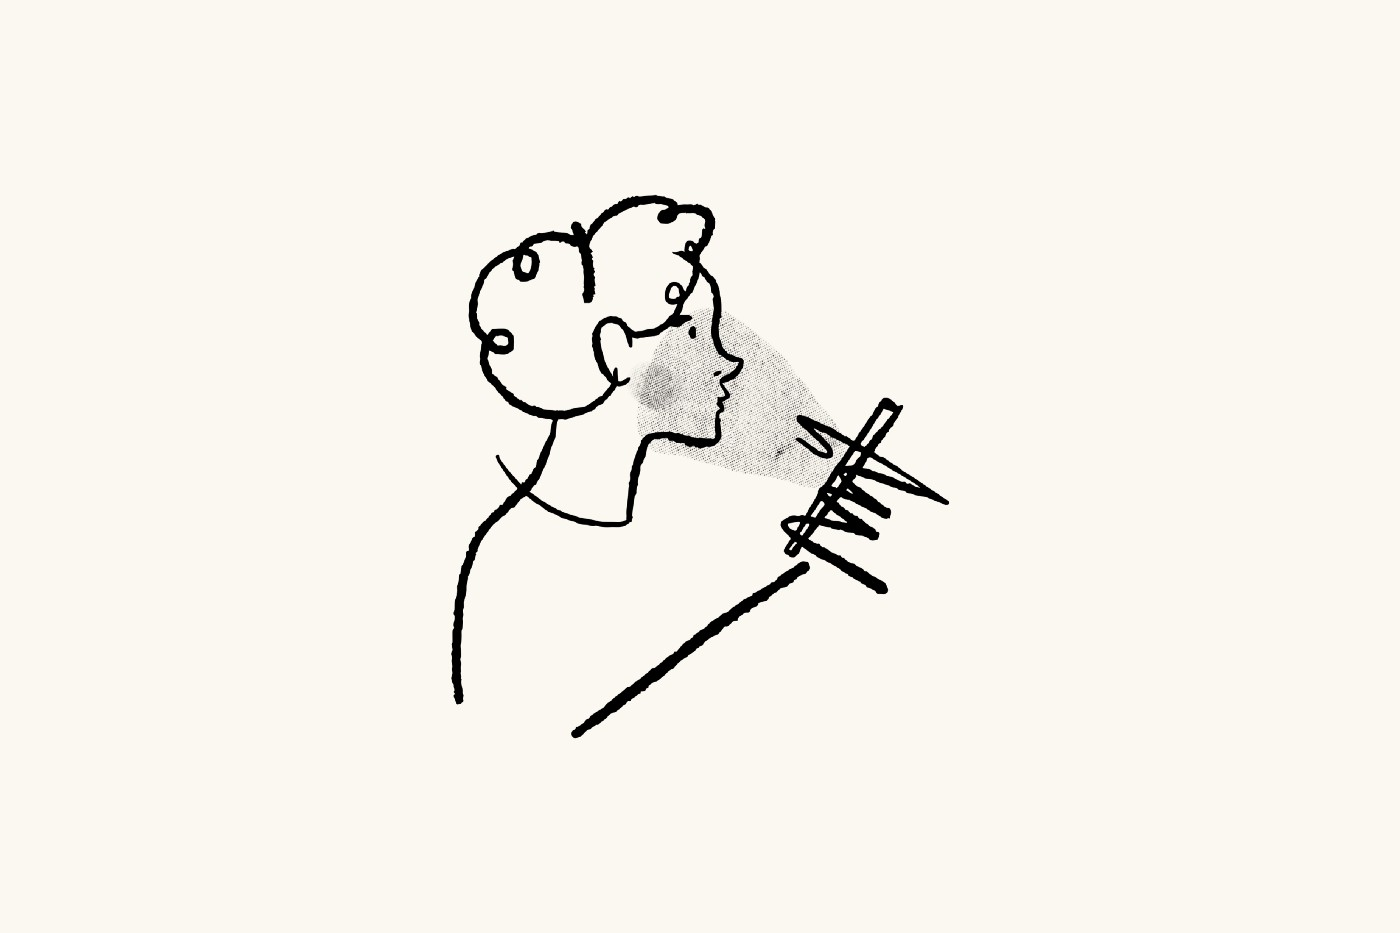 A cartoon of a person in side profile holding a phone. The light from the phone shines on their face.